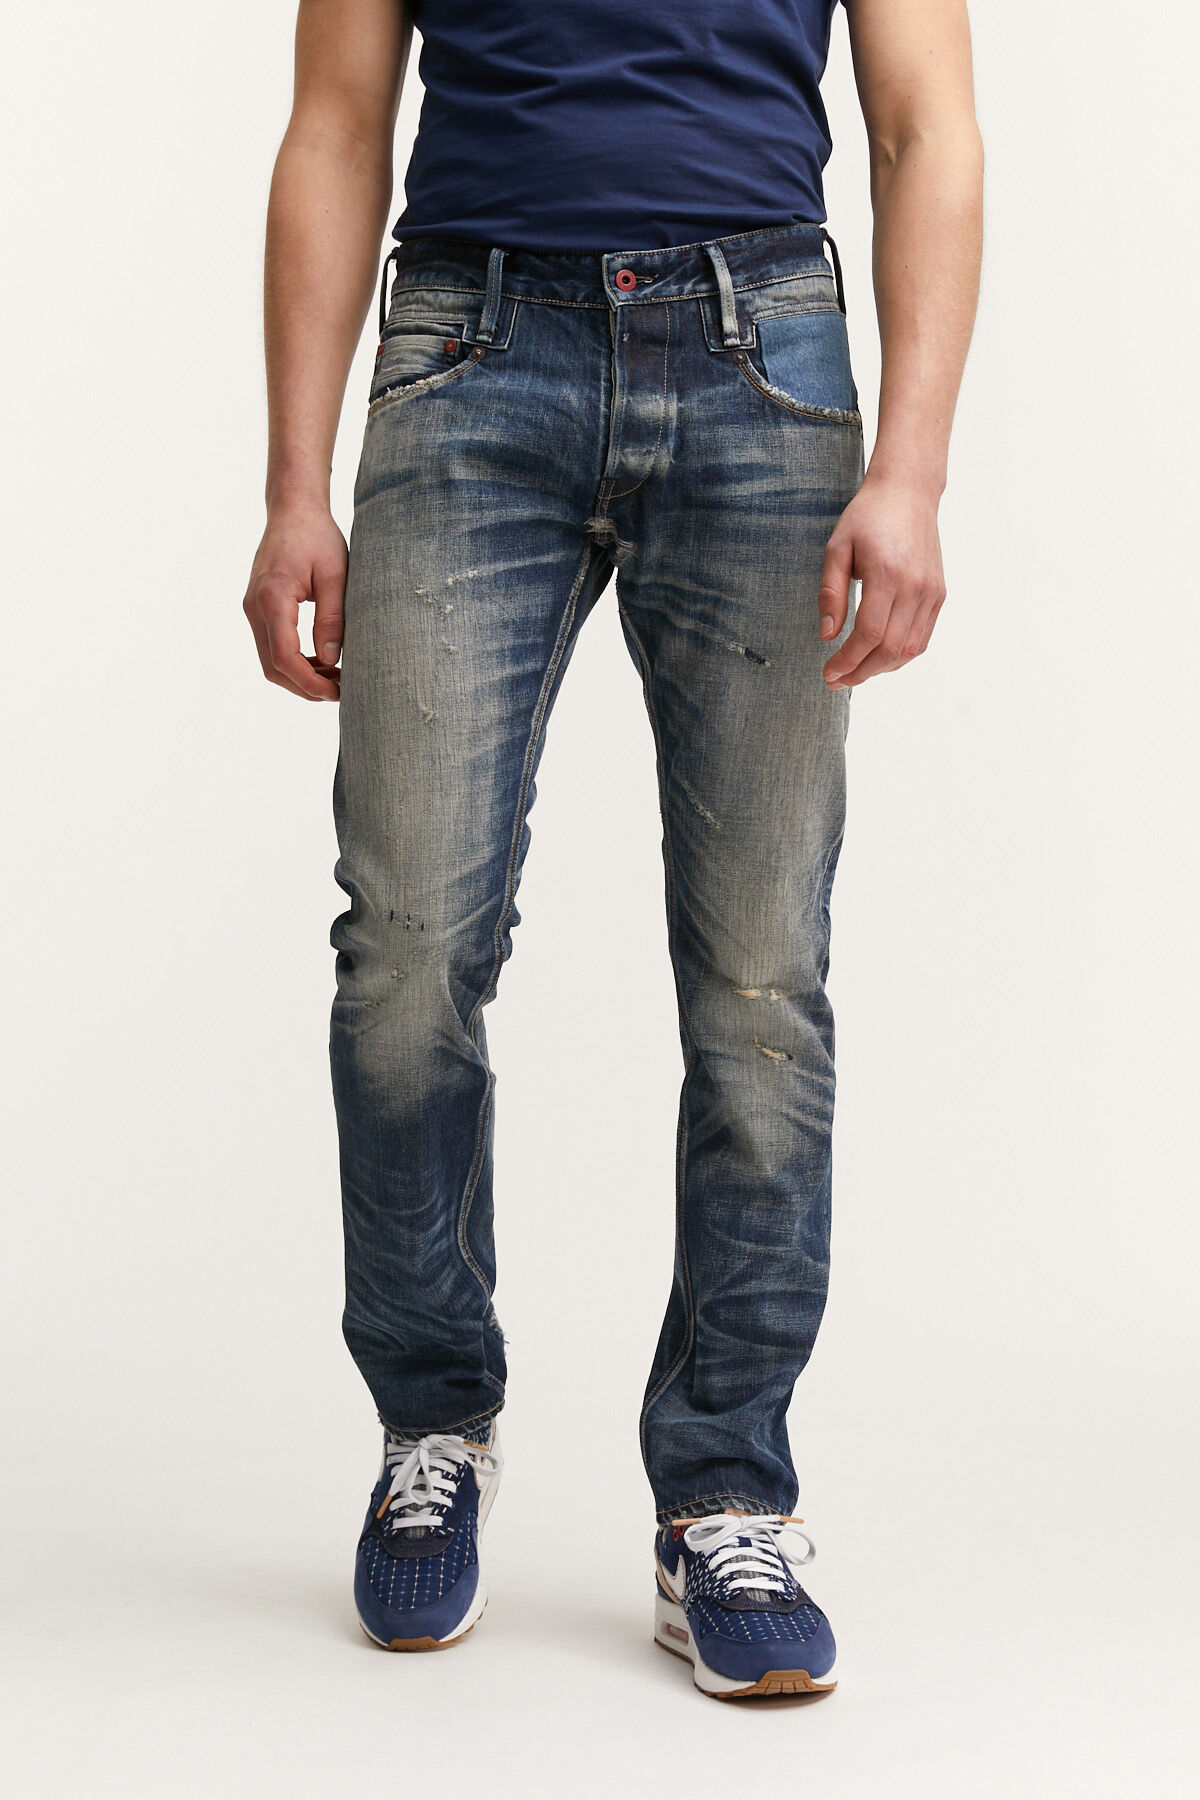 SKIN Made in Japan, Indigo Selvedge Denim - Slim Fit